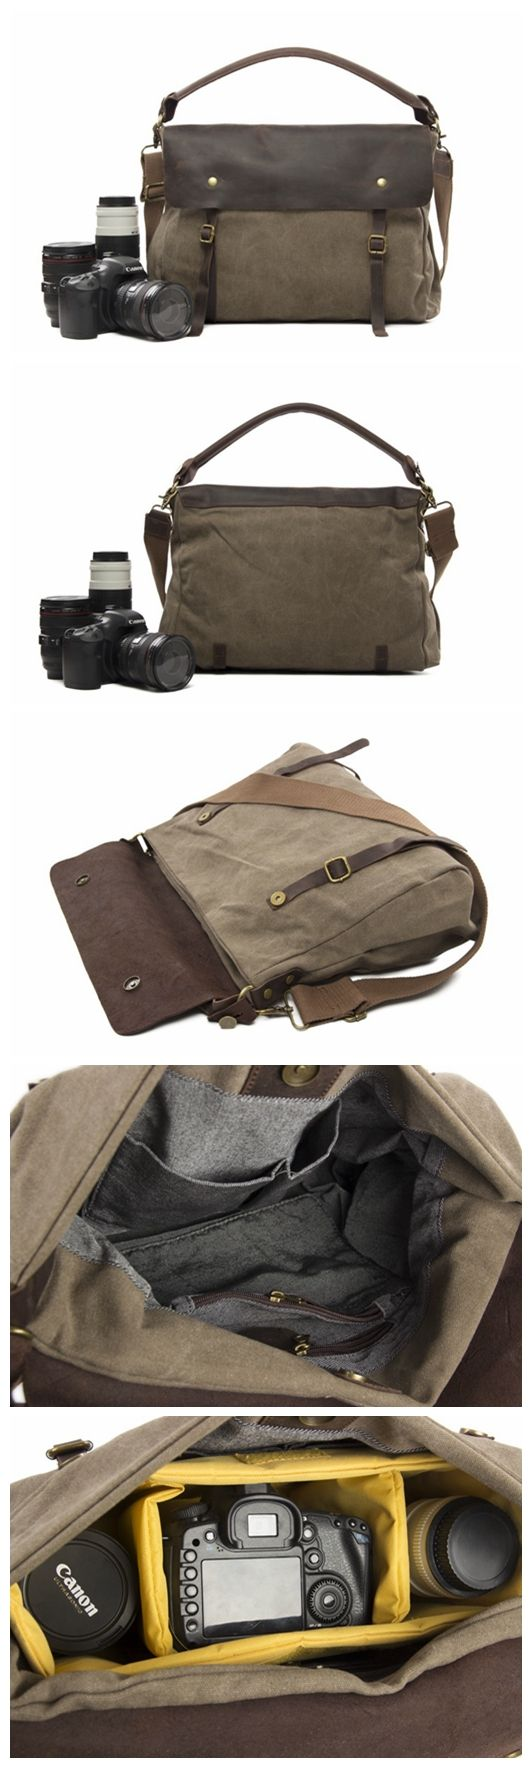 Canvas with Leather Trim DSLR Camera Bag Shoulder Bag Messenger Bag Tote Bag